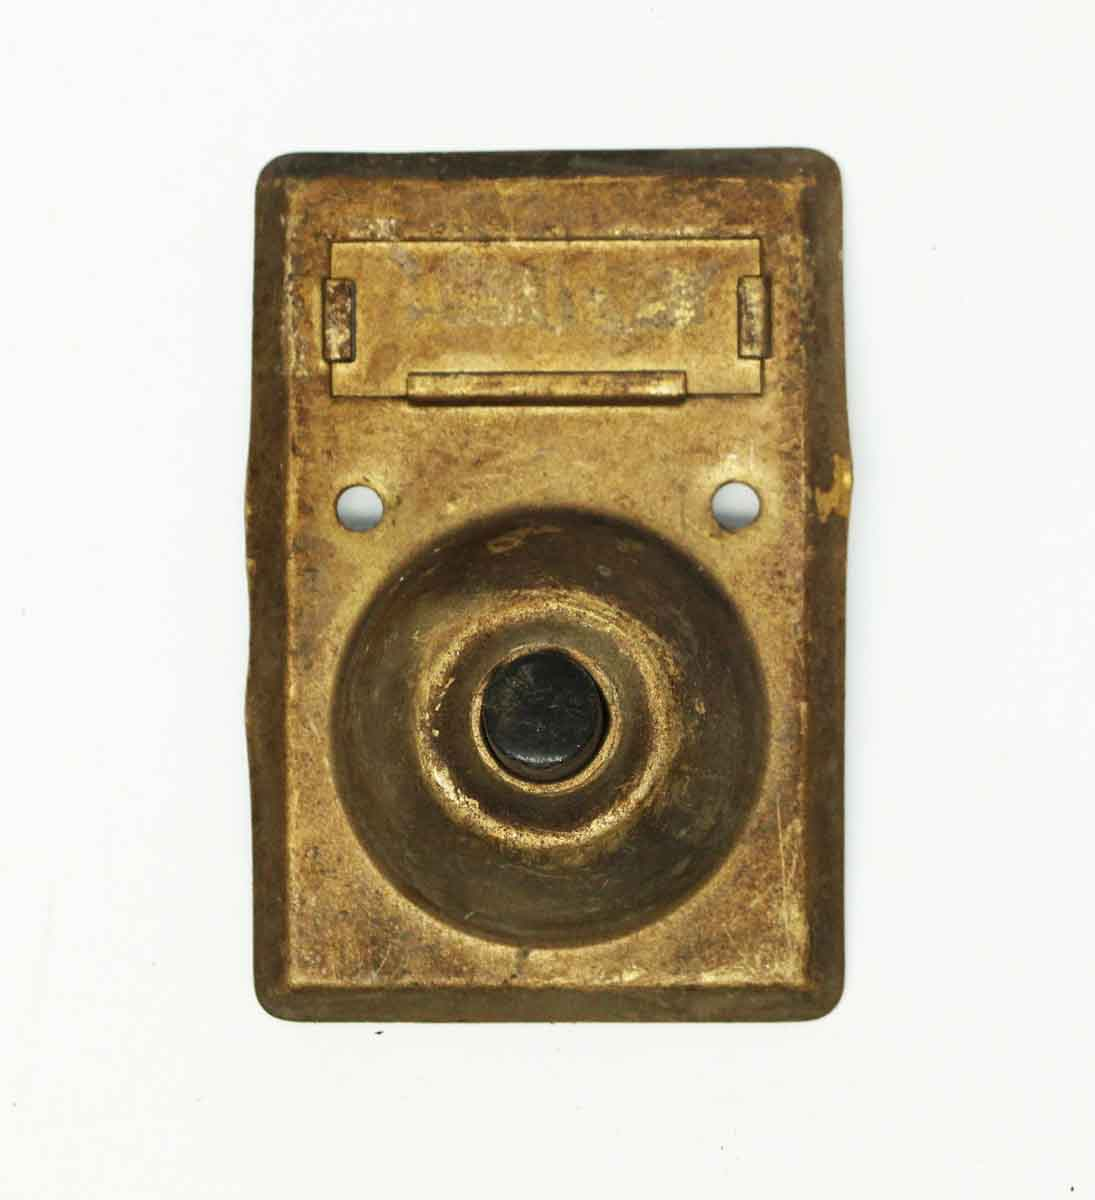 Square Apartment Vintage Doorbell - Square Apartment Vintage Doorbell Olde Good Things